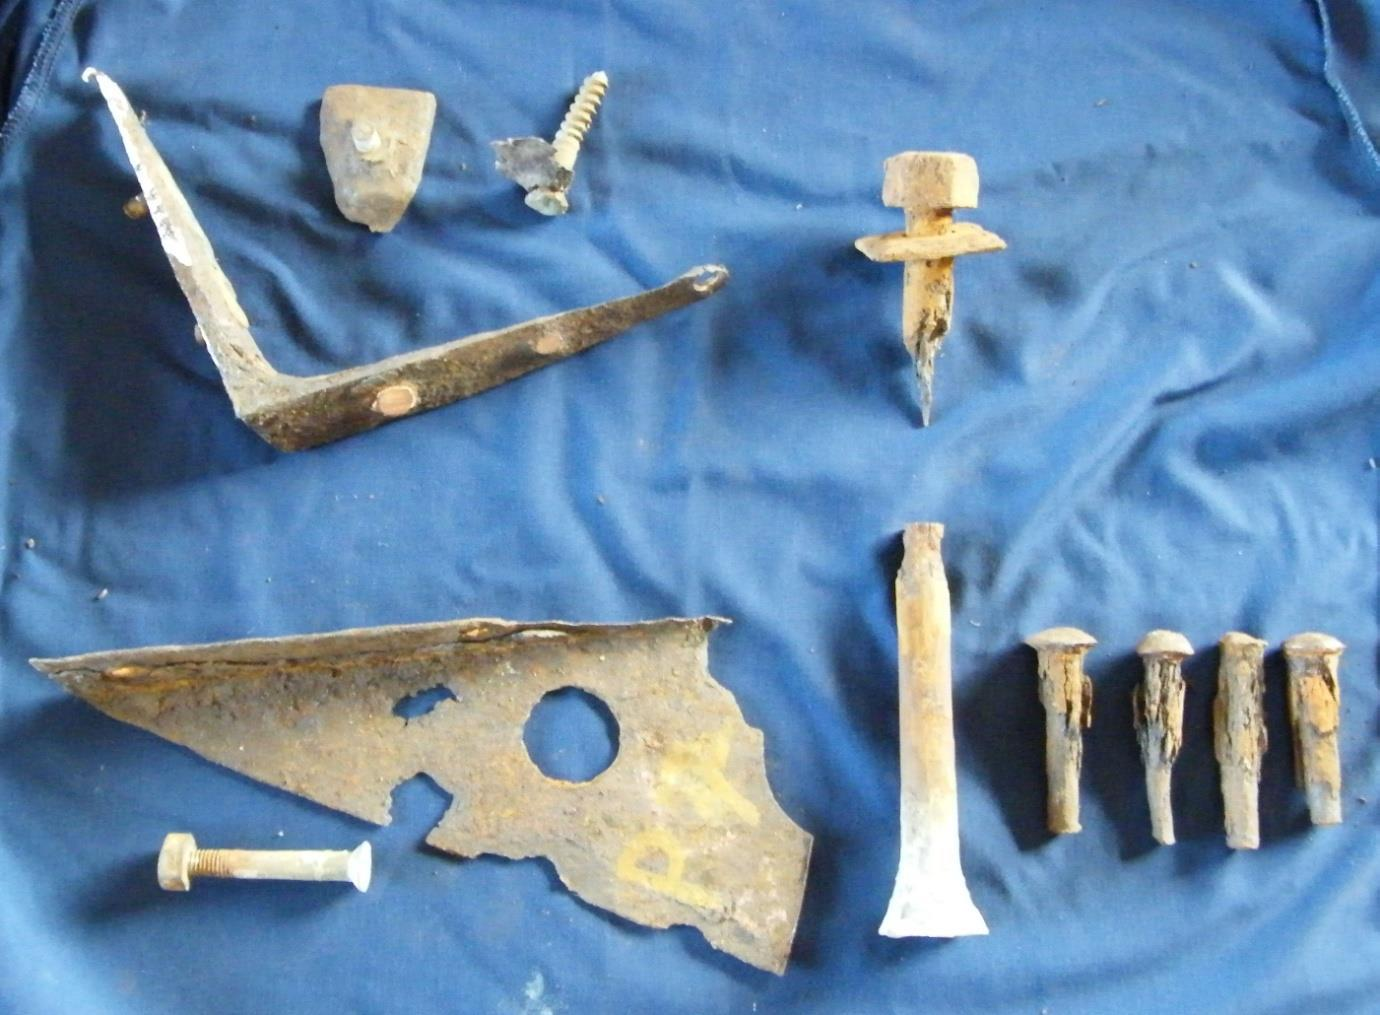 Fastenings removed from the hull. The items to the left indicate how fittings that are less noble, steel and iron, can corrode whilst their fastenings of copper and bronze remain intact. The large bolt is one of ten that secures the ballast keel to the hull. The mid section has corroded away. The four fastenings, bottom right, are wrought iron bolts removed from the gunwhales.